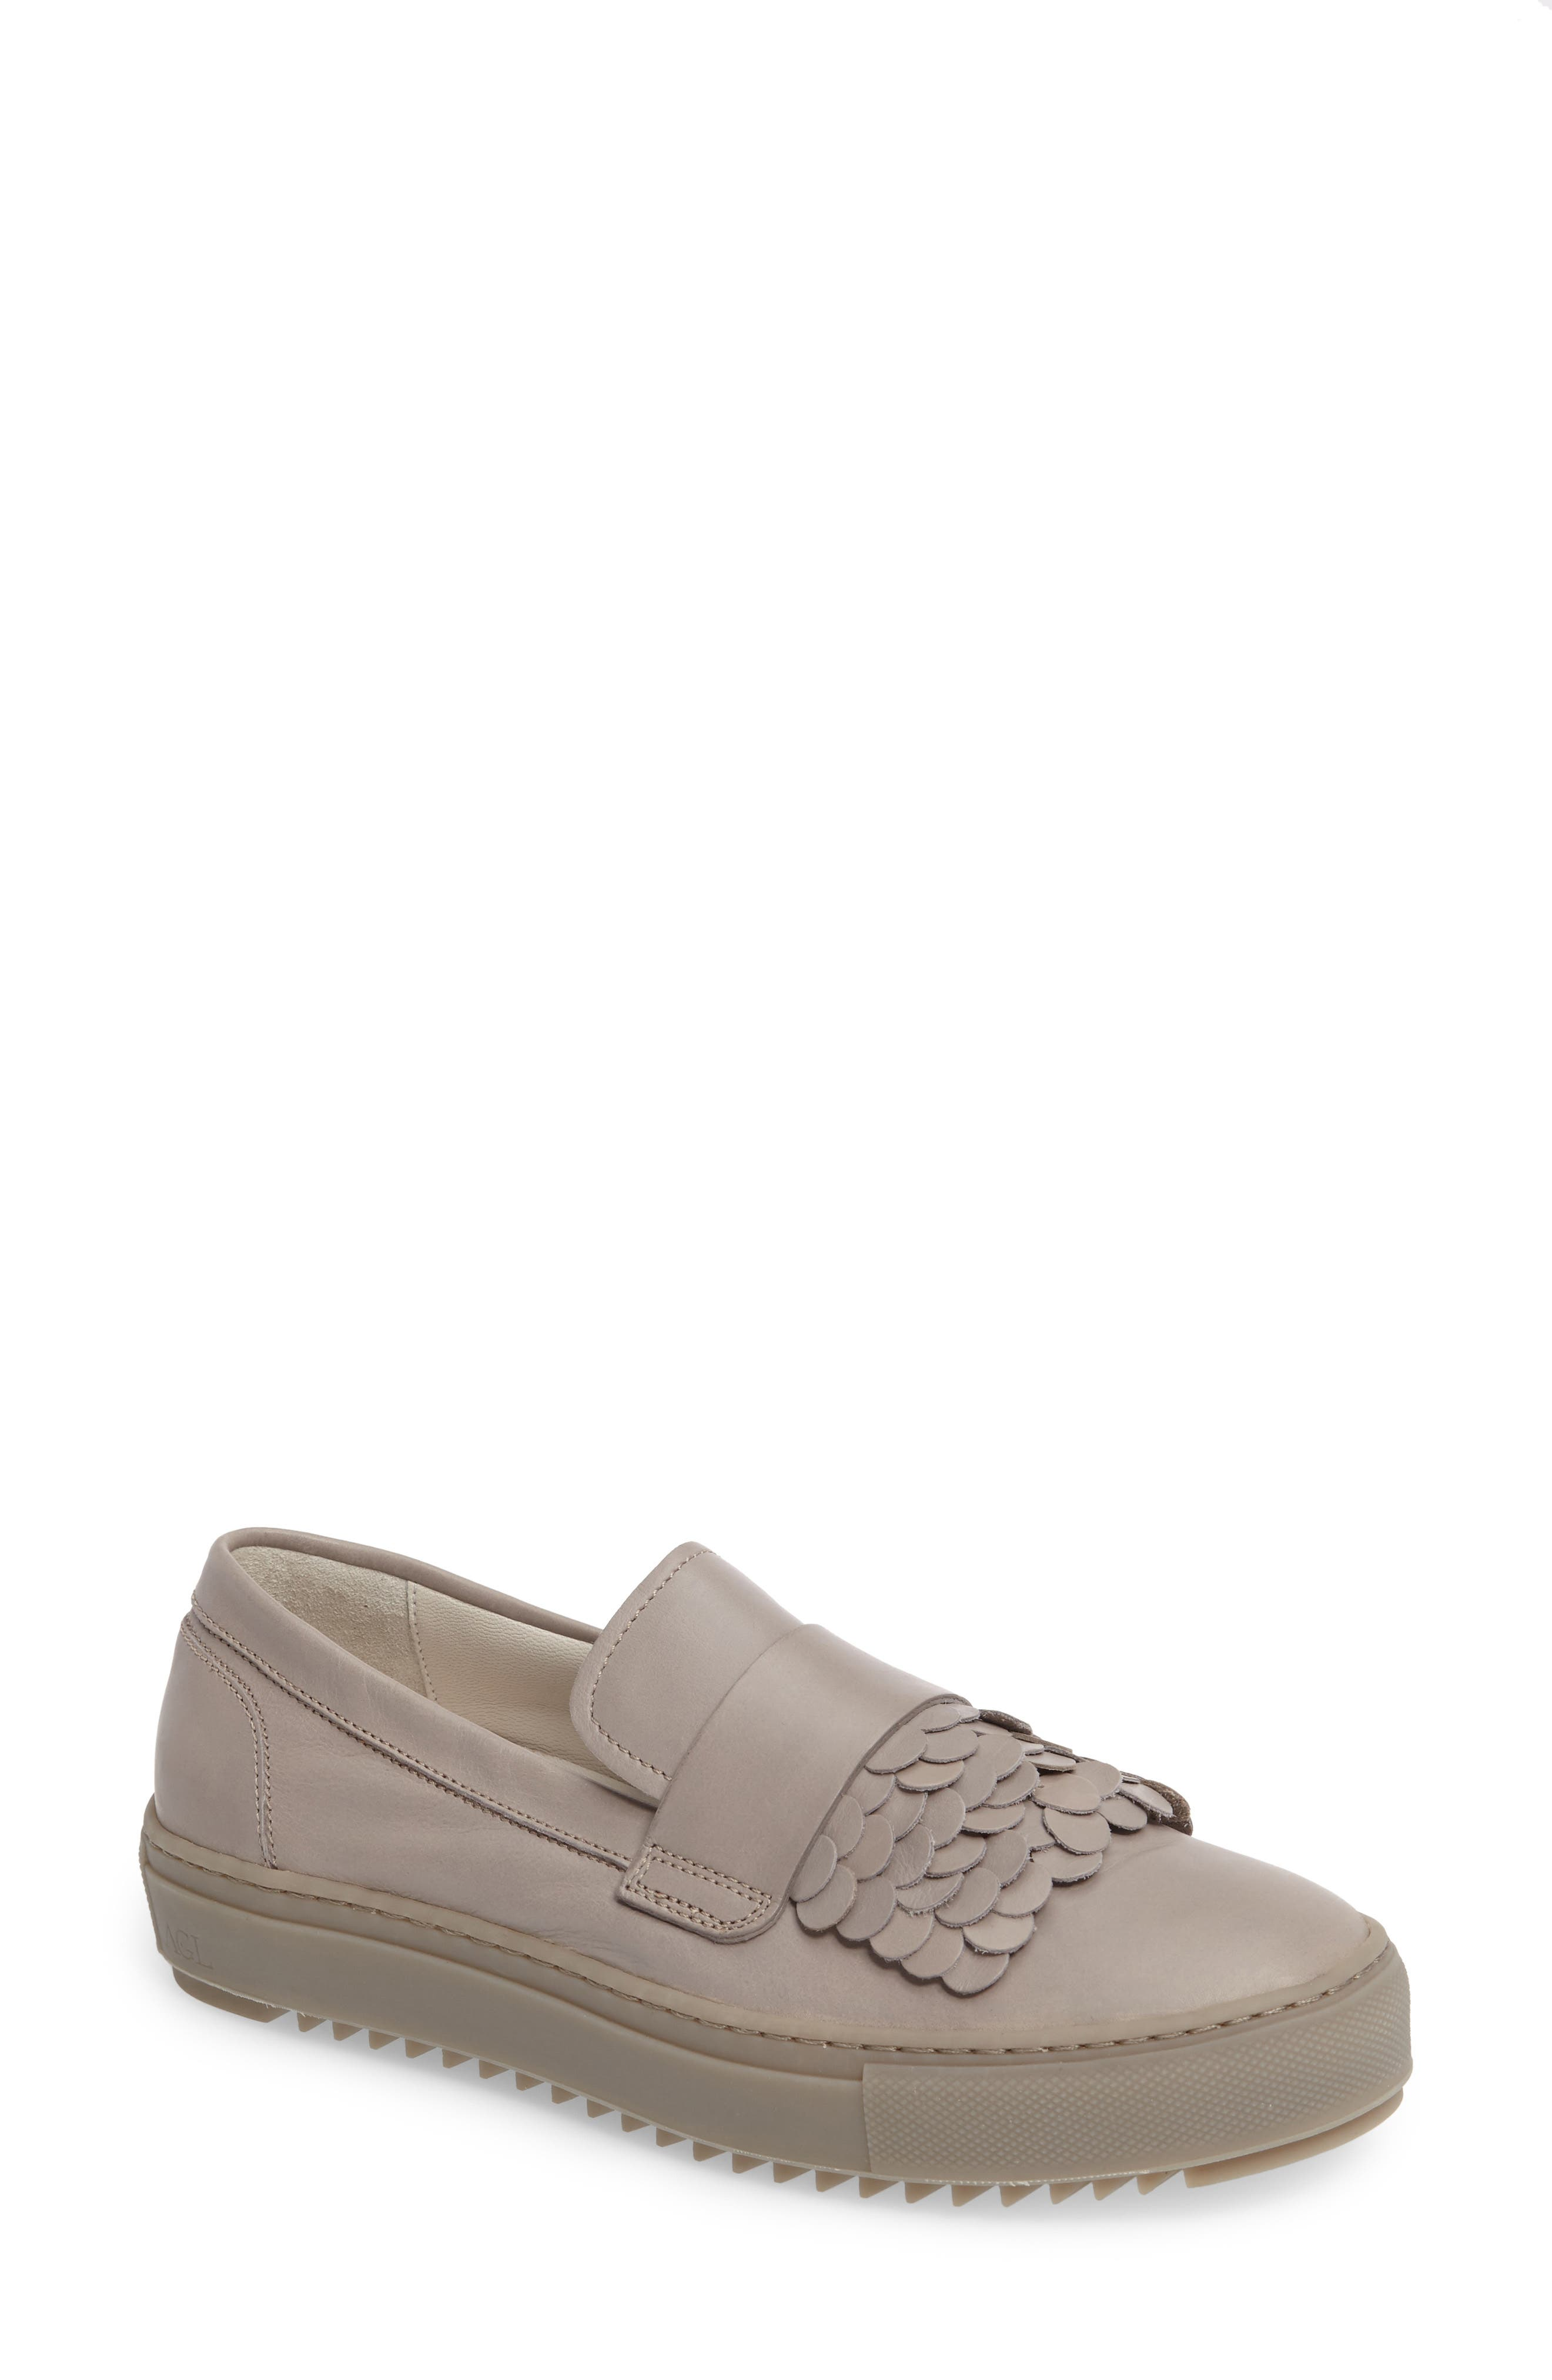 Alternate Image 1 Selected - AGL Paillette Skater Sneaker (Women)